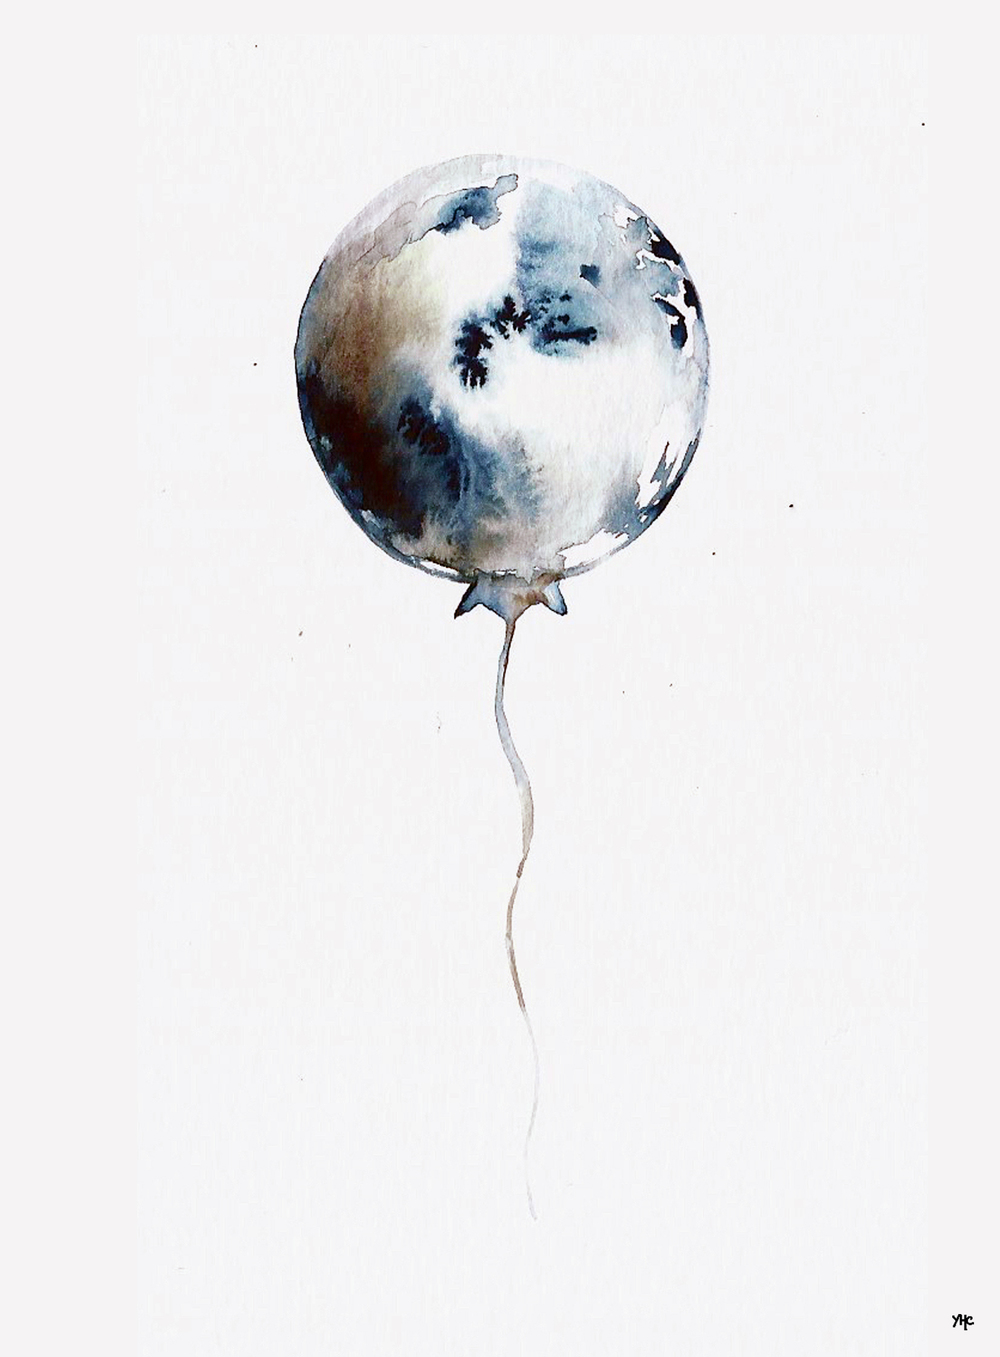 Balloon(Alice in Wonderland)